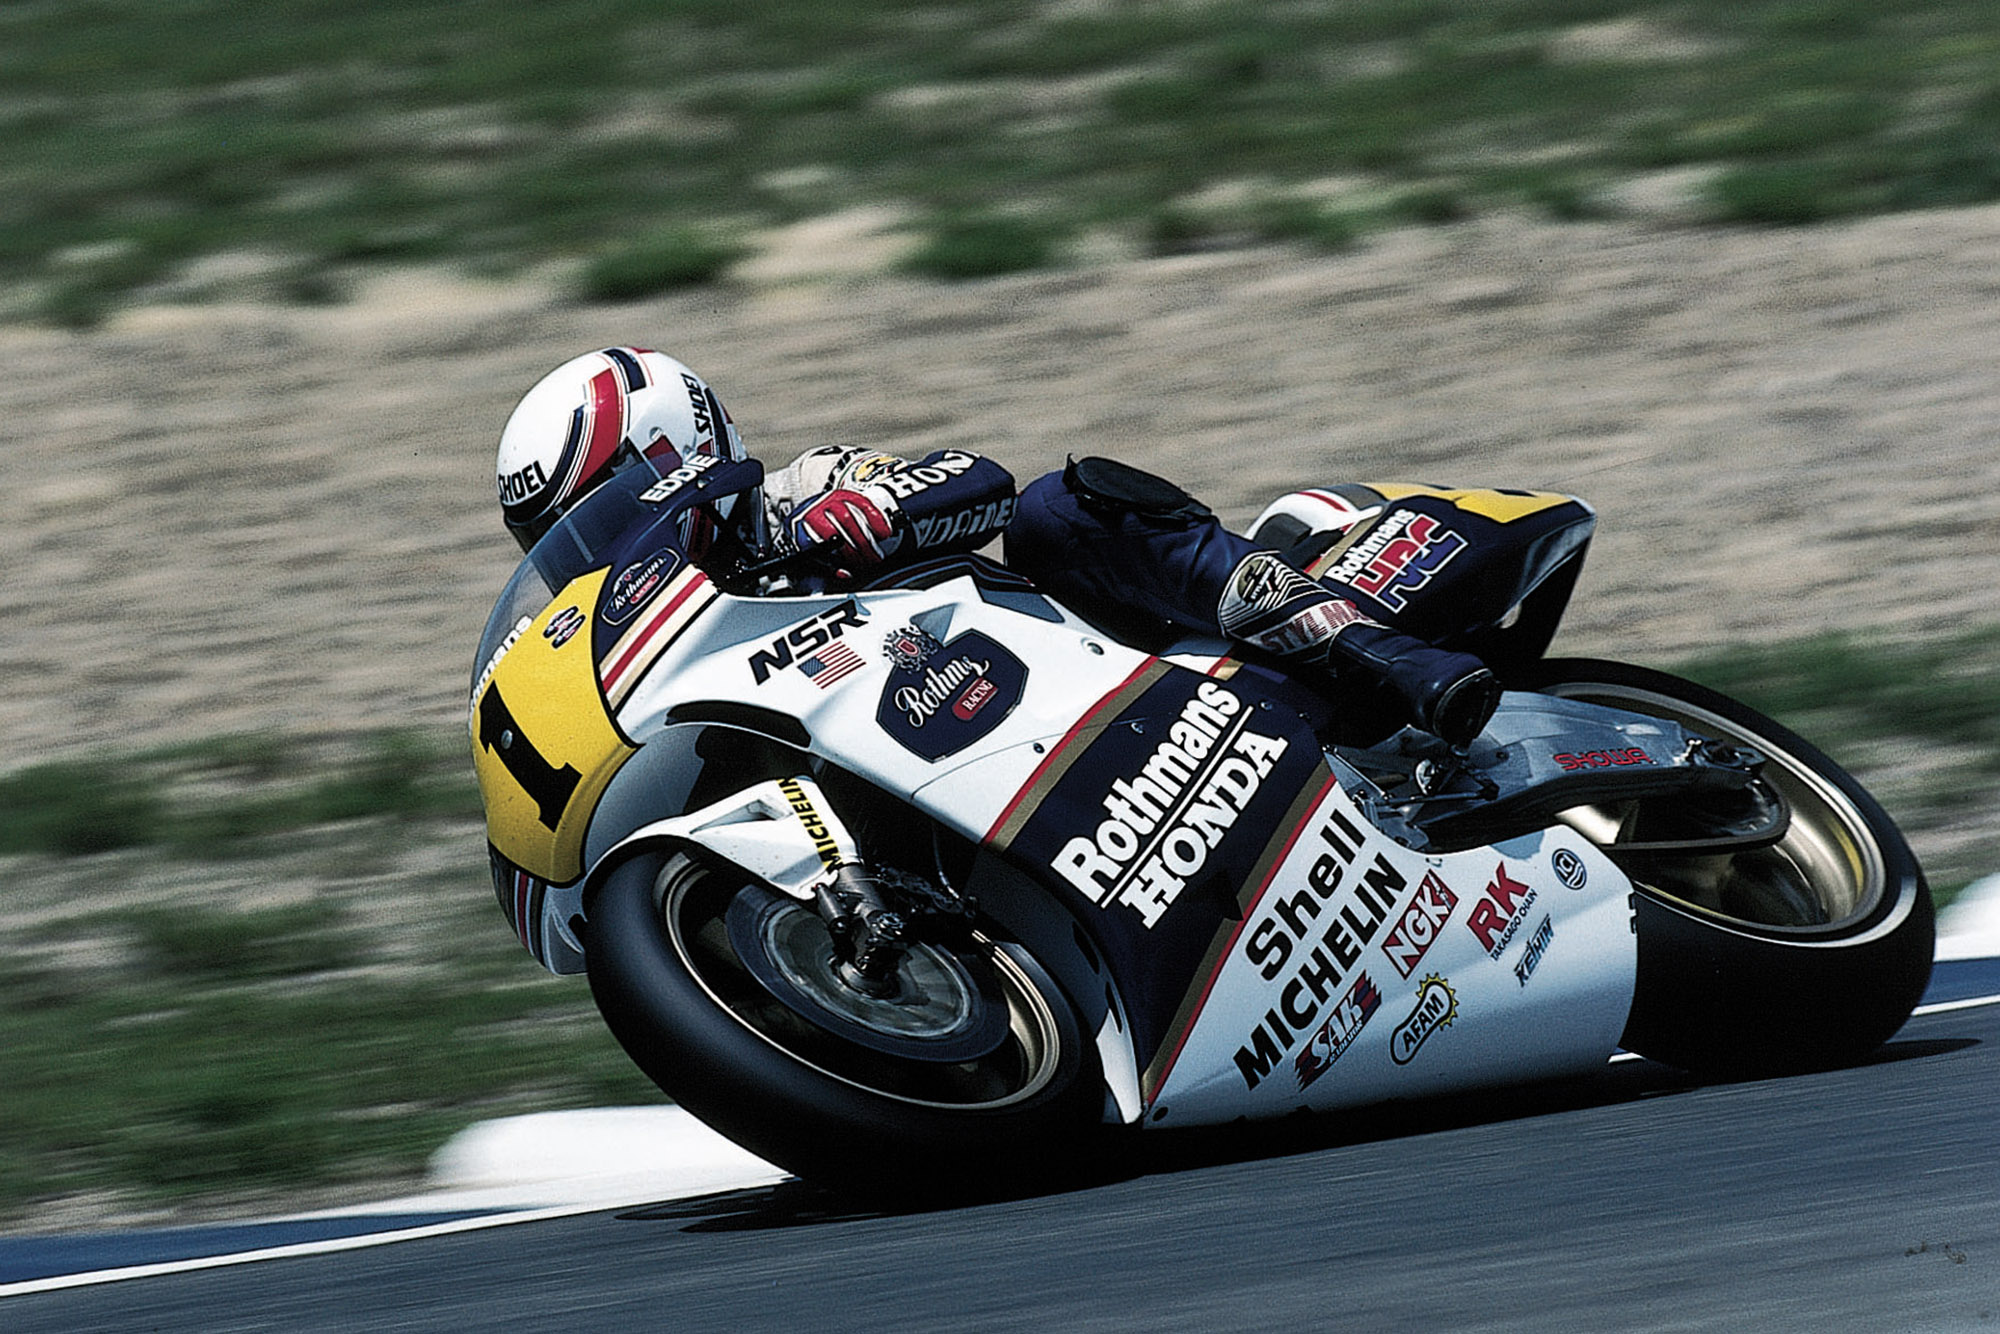 Eddie Lawson on the Honda NSR500 in 1989